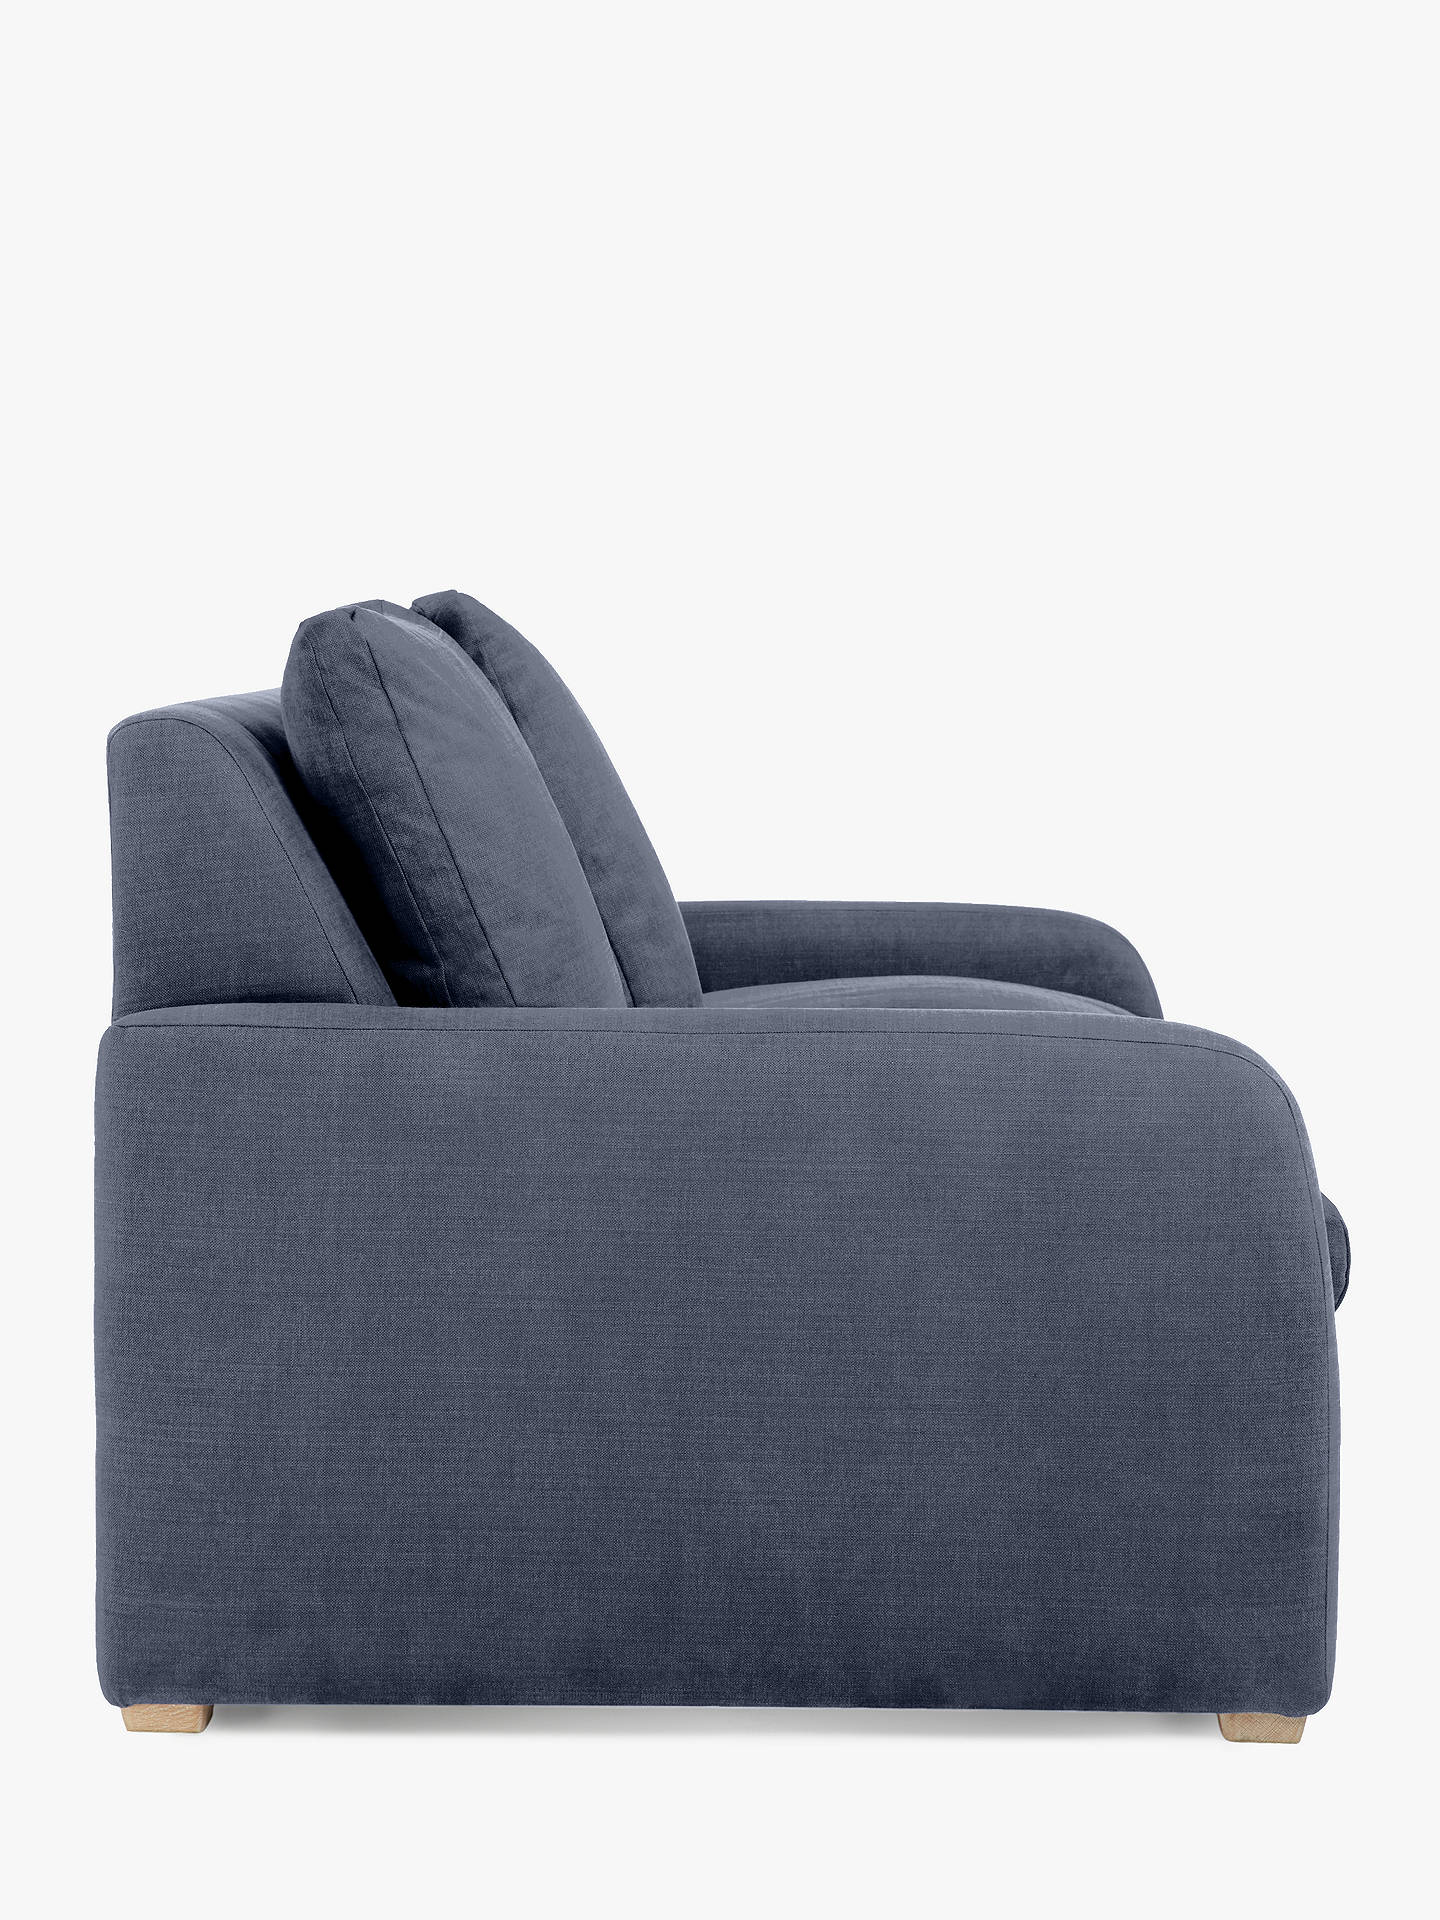 Buy Floppy Jo Sofa Bed by Loaf at John Lewis, Clever Velvet Liquorice Grey Online at johnlewis.com